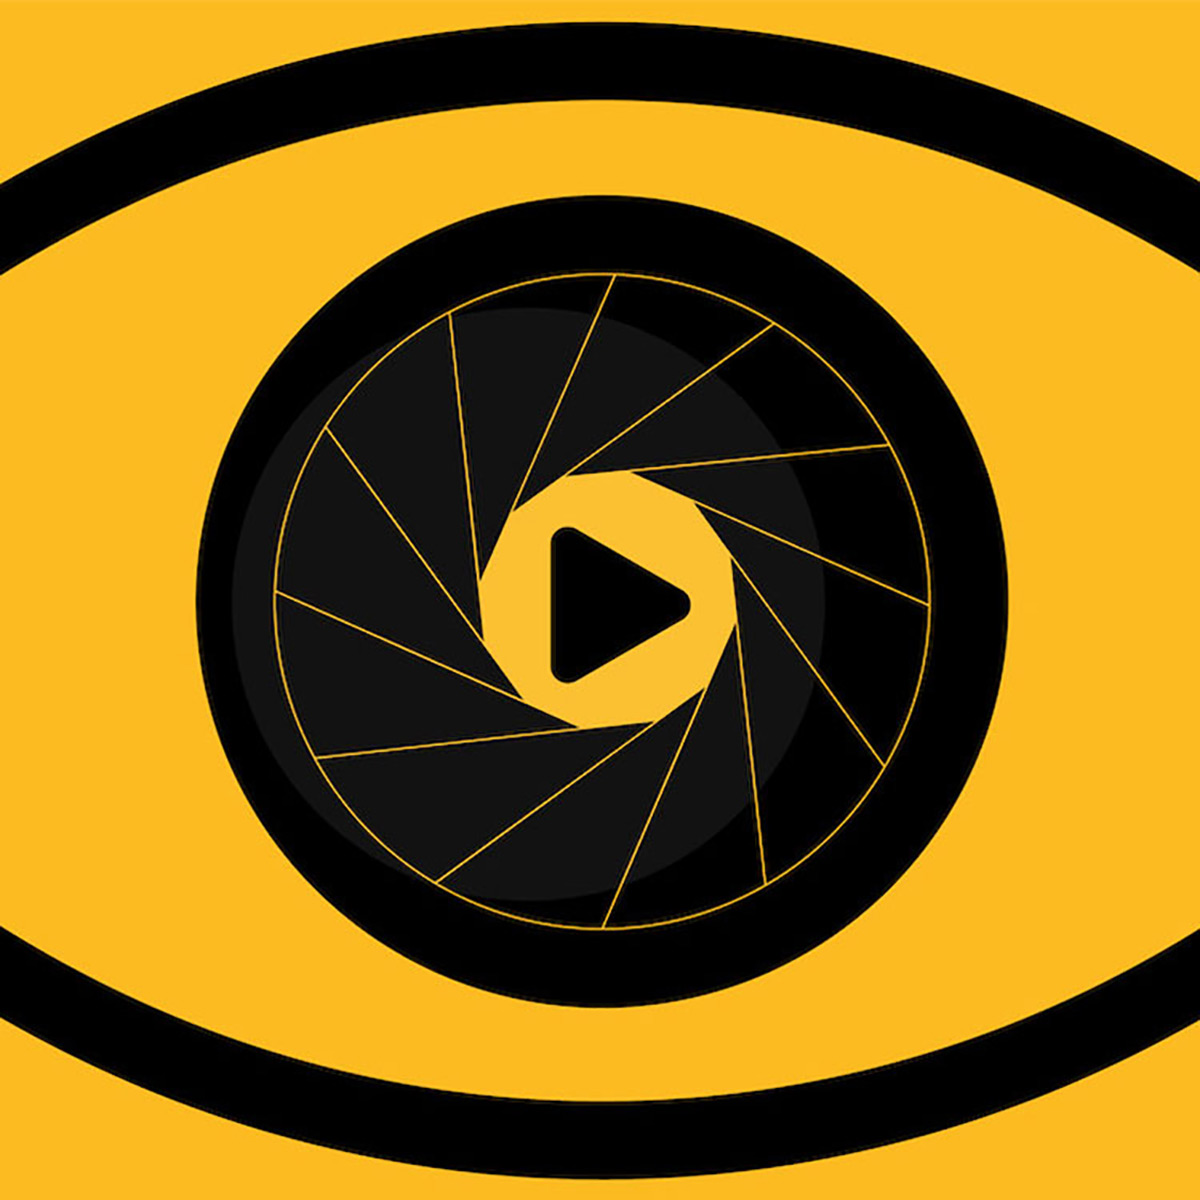 illustrated eye with play button in the iris